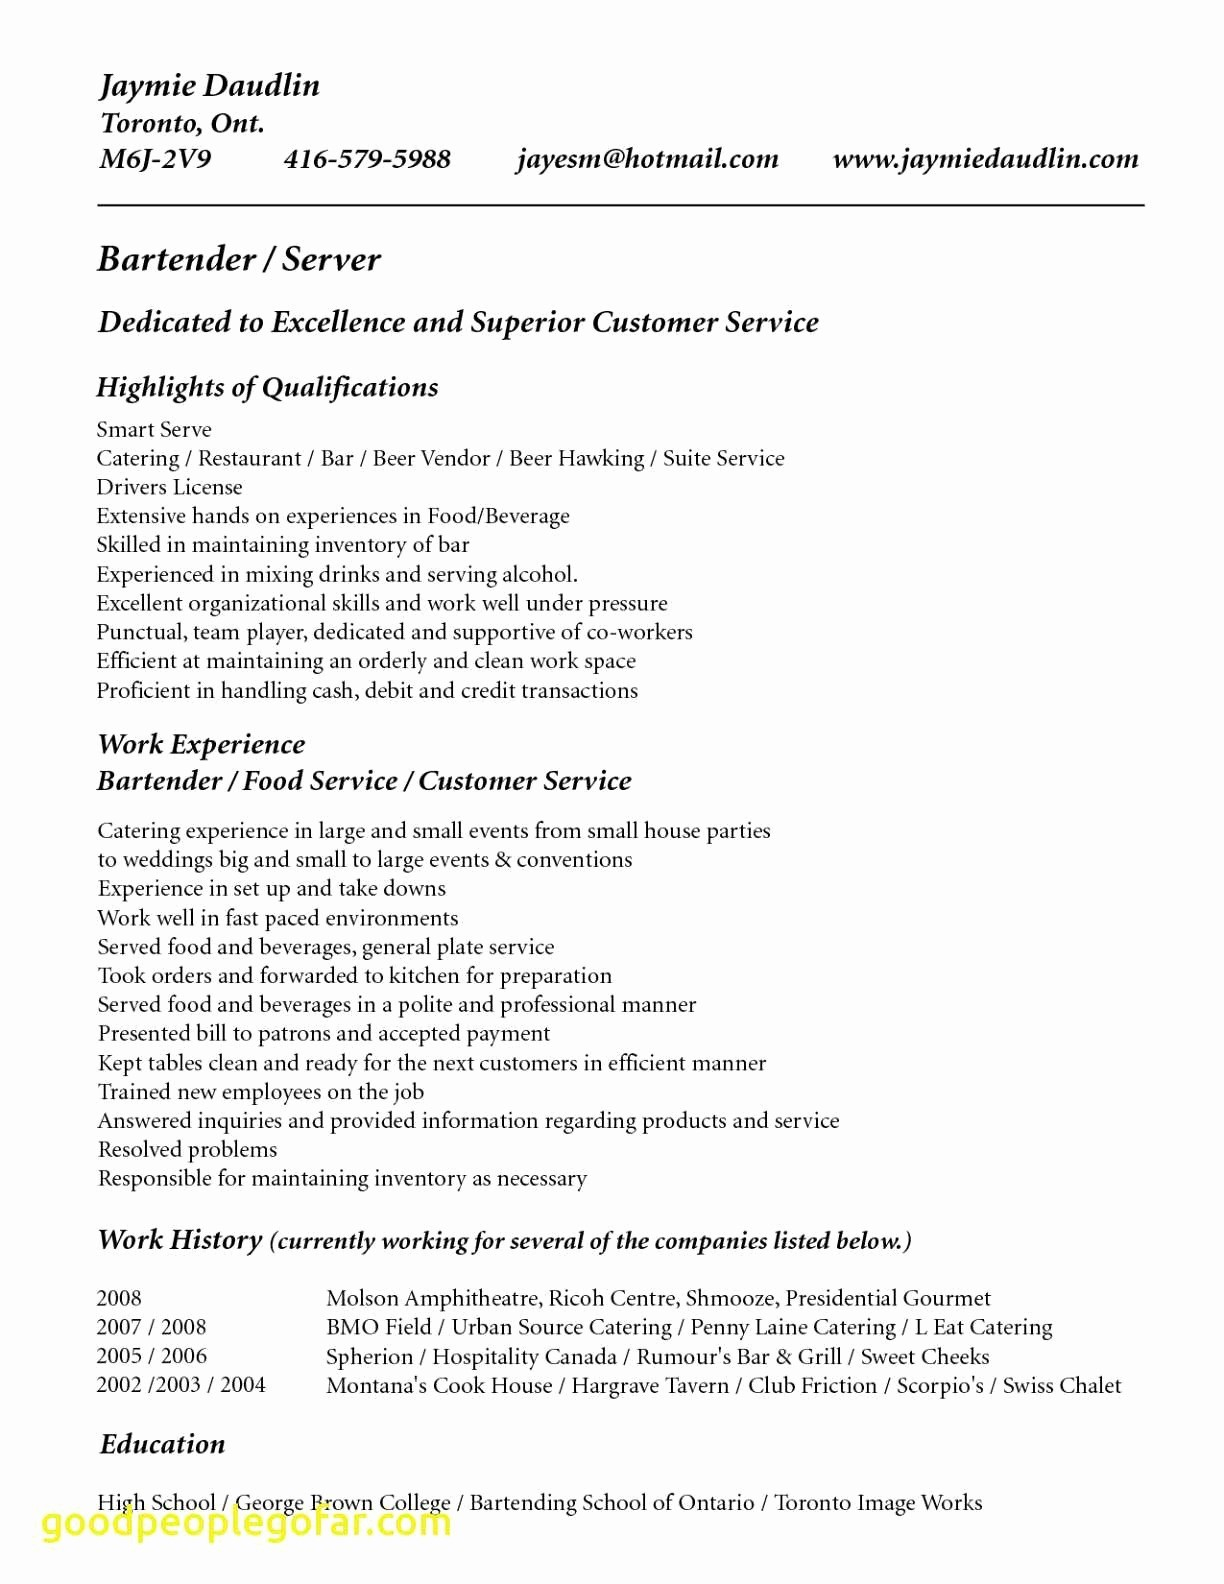 Bartending Responsibilities for A Resume - 15 Awesome Bartender Resume Sample